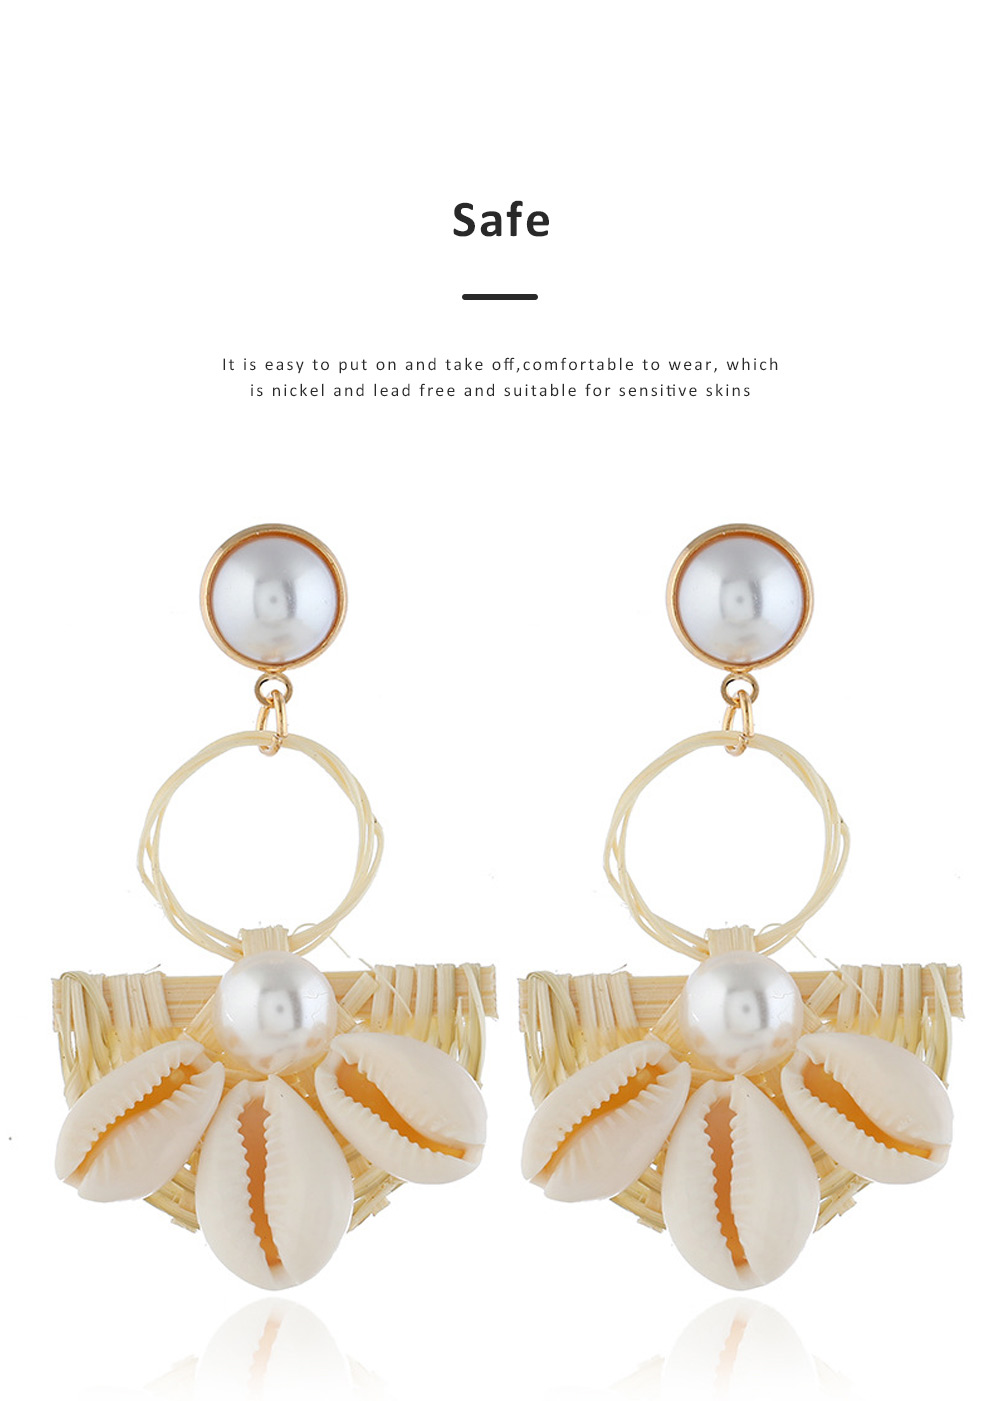 Natural Ocean Style Earring Colorful Outfit Accessory Jewelry Shell Rattan Pearl Earring for Women Girls 4